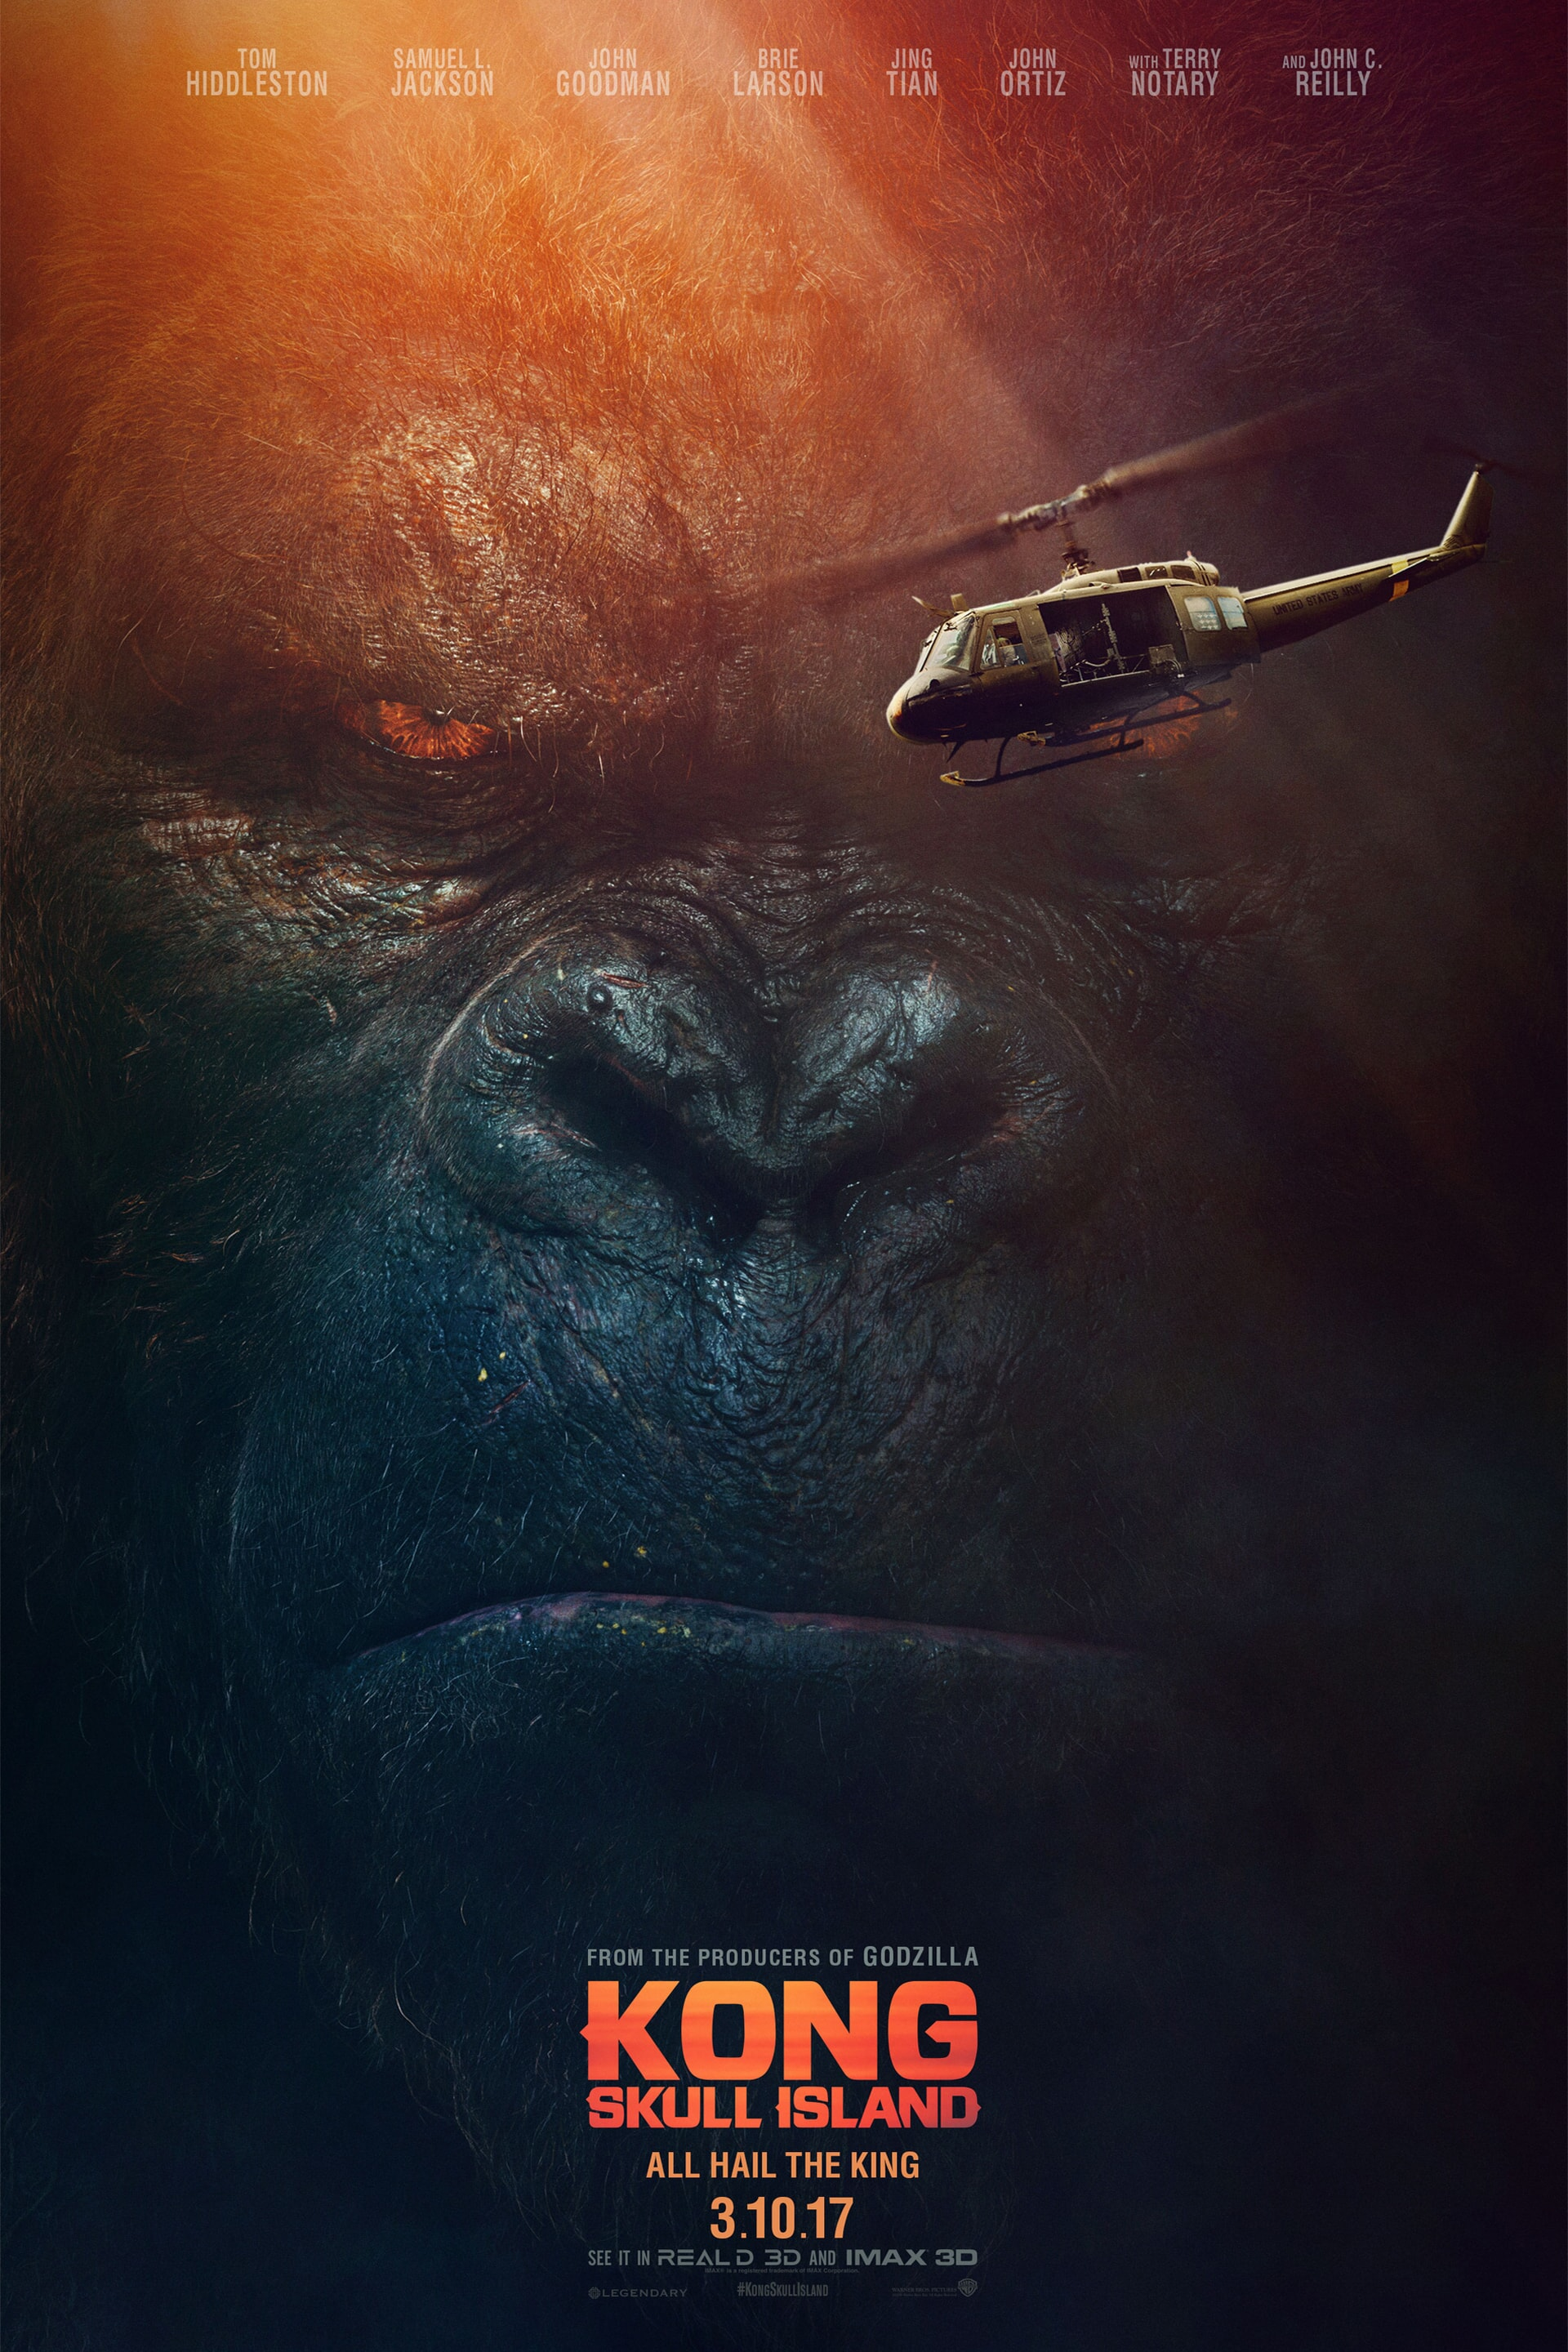 Close-up of Kong's face with helicopter flying in front